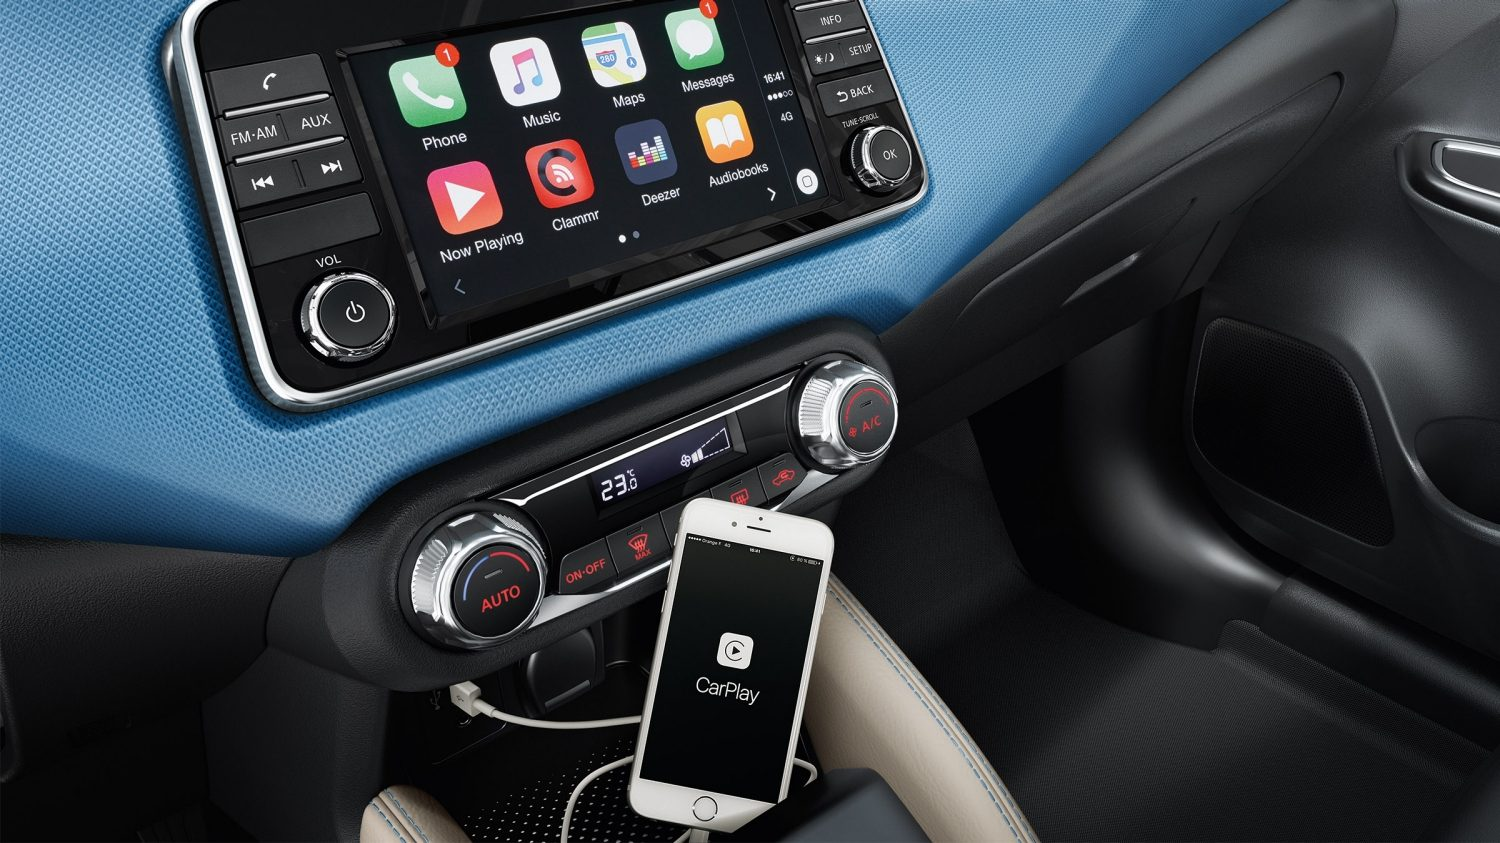 Nissan MICRA Apple CarPlay scherm